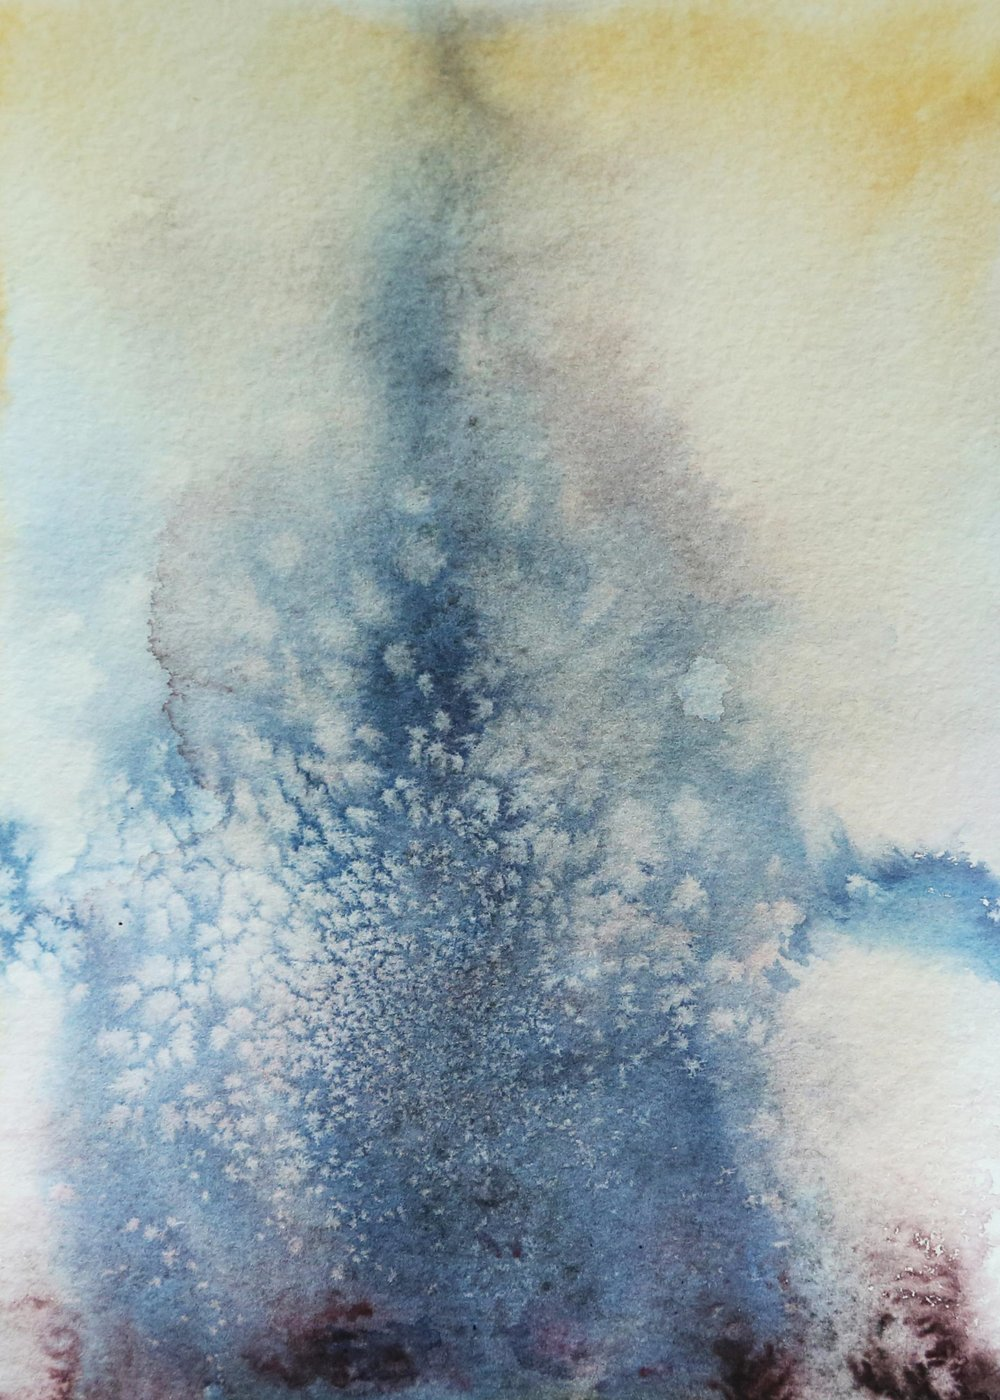 Vast and tender, 2015. Watercolor on Paper, 6x8